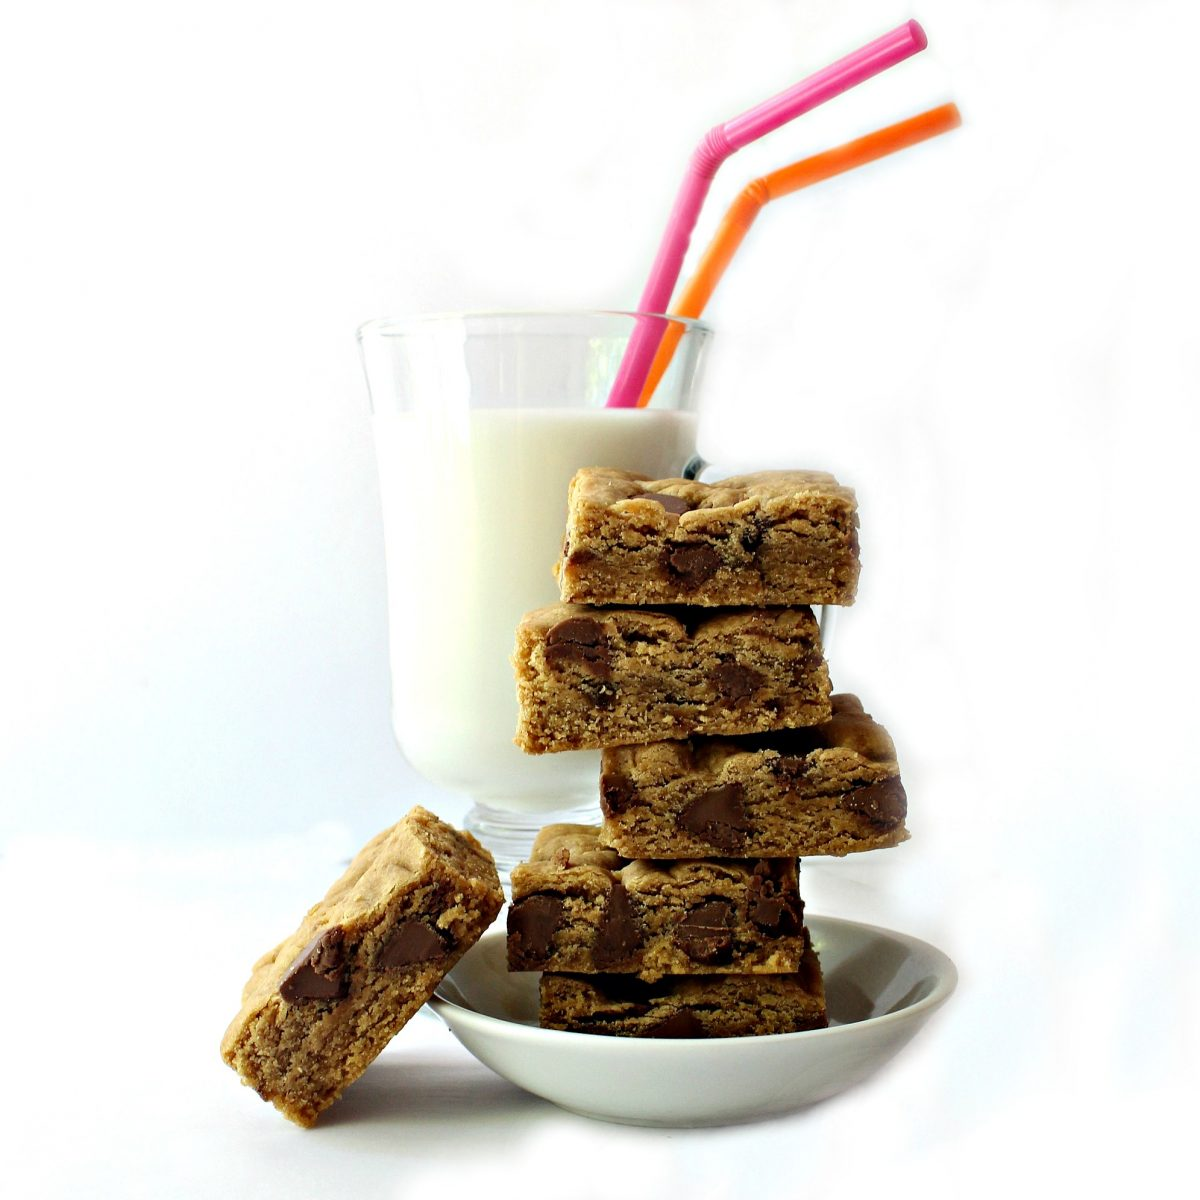 Stack of bars in a bowl in front of a glass of milk with two straws.